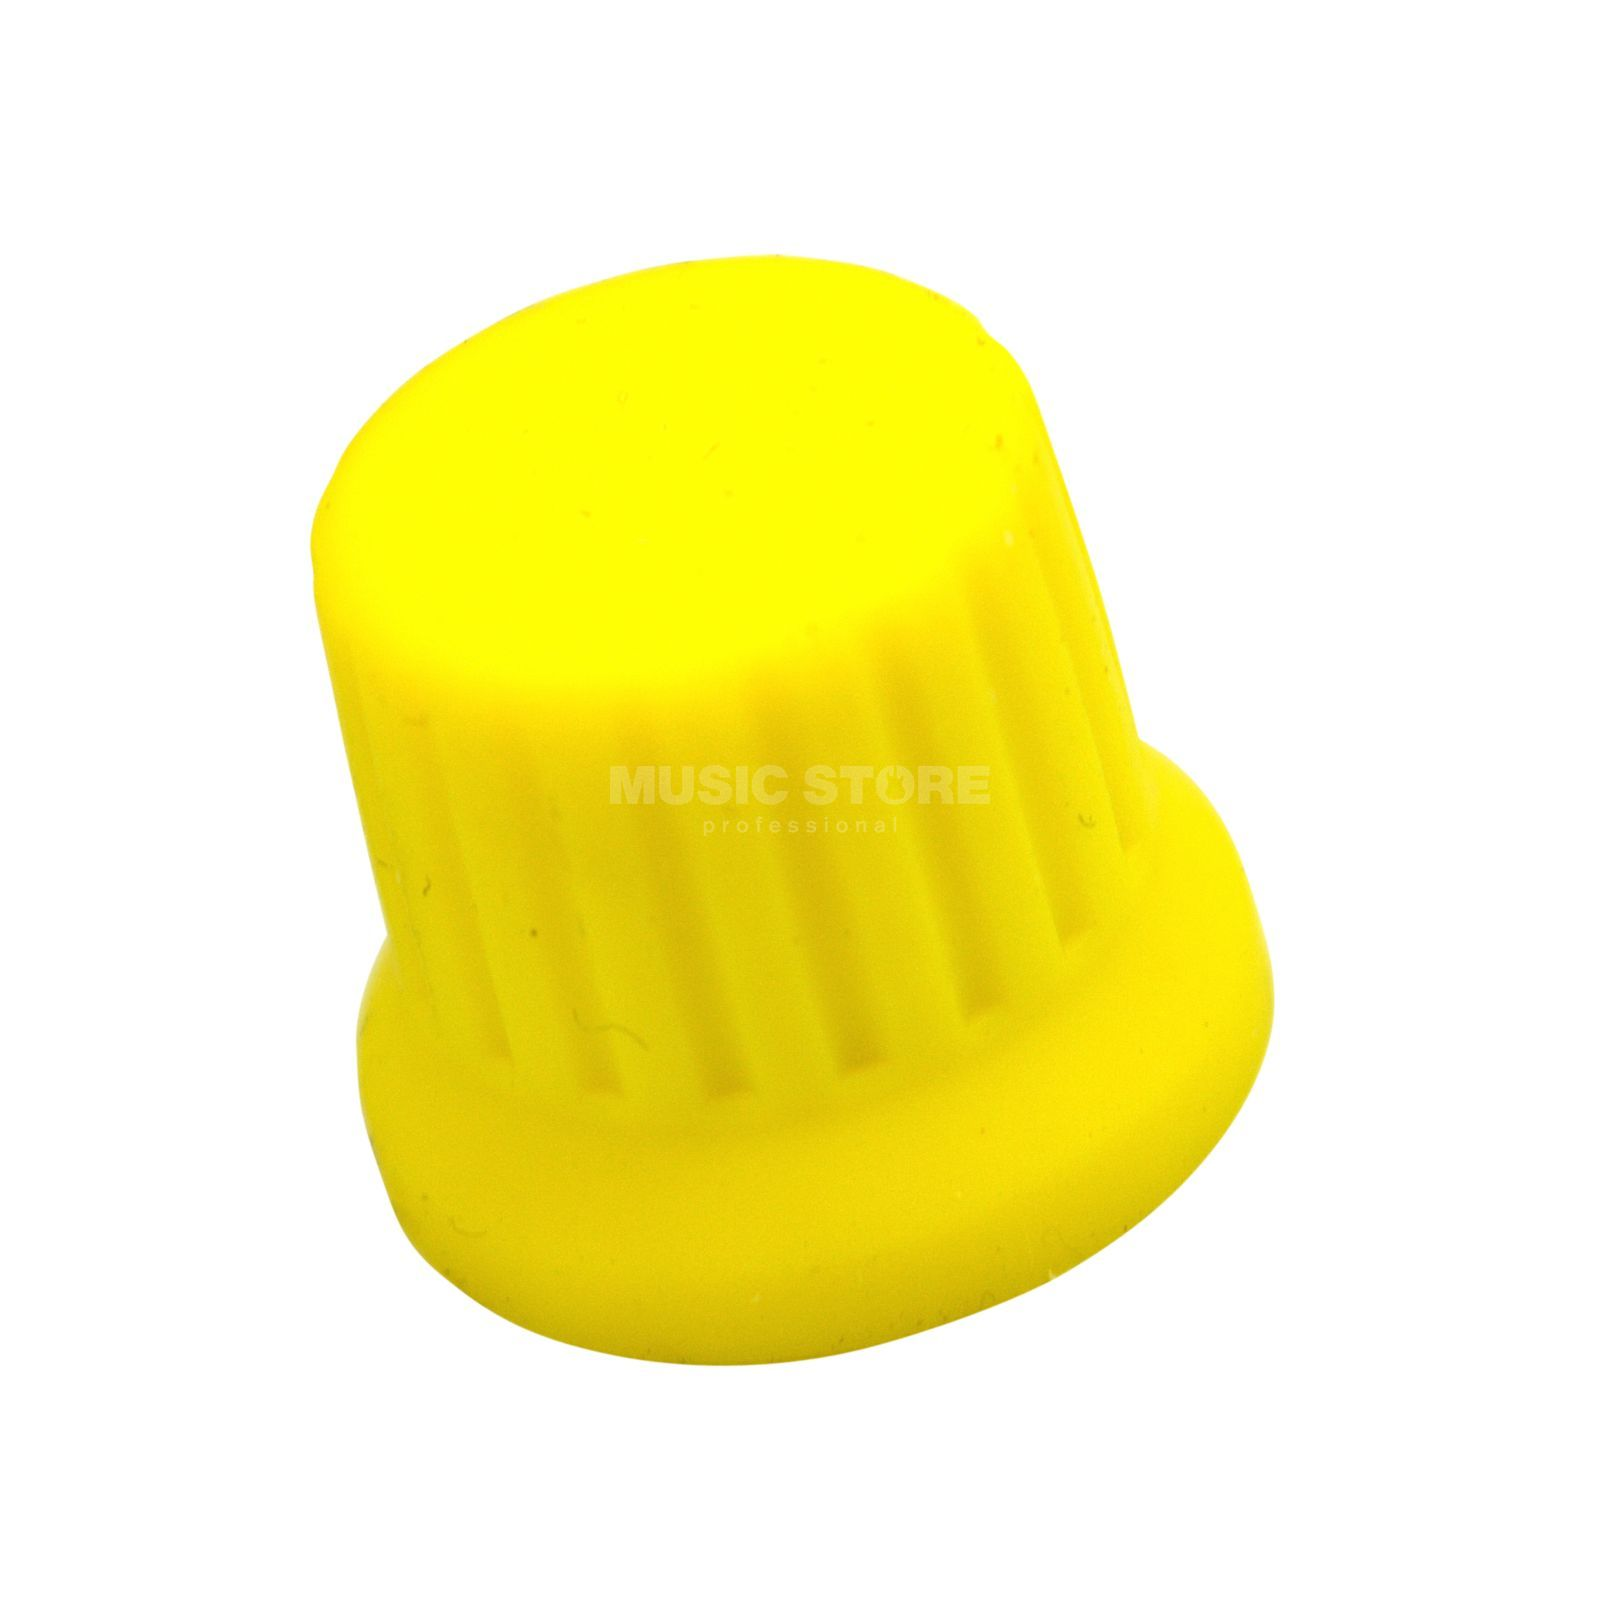 DJ TECHTOOLS Chroma Caps Encor Knob yellow Immagine prodotto